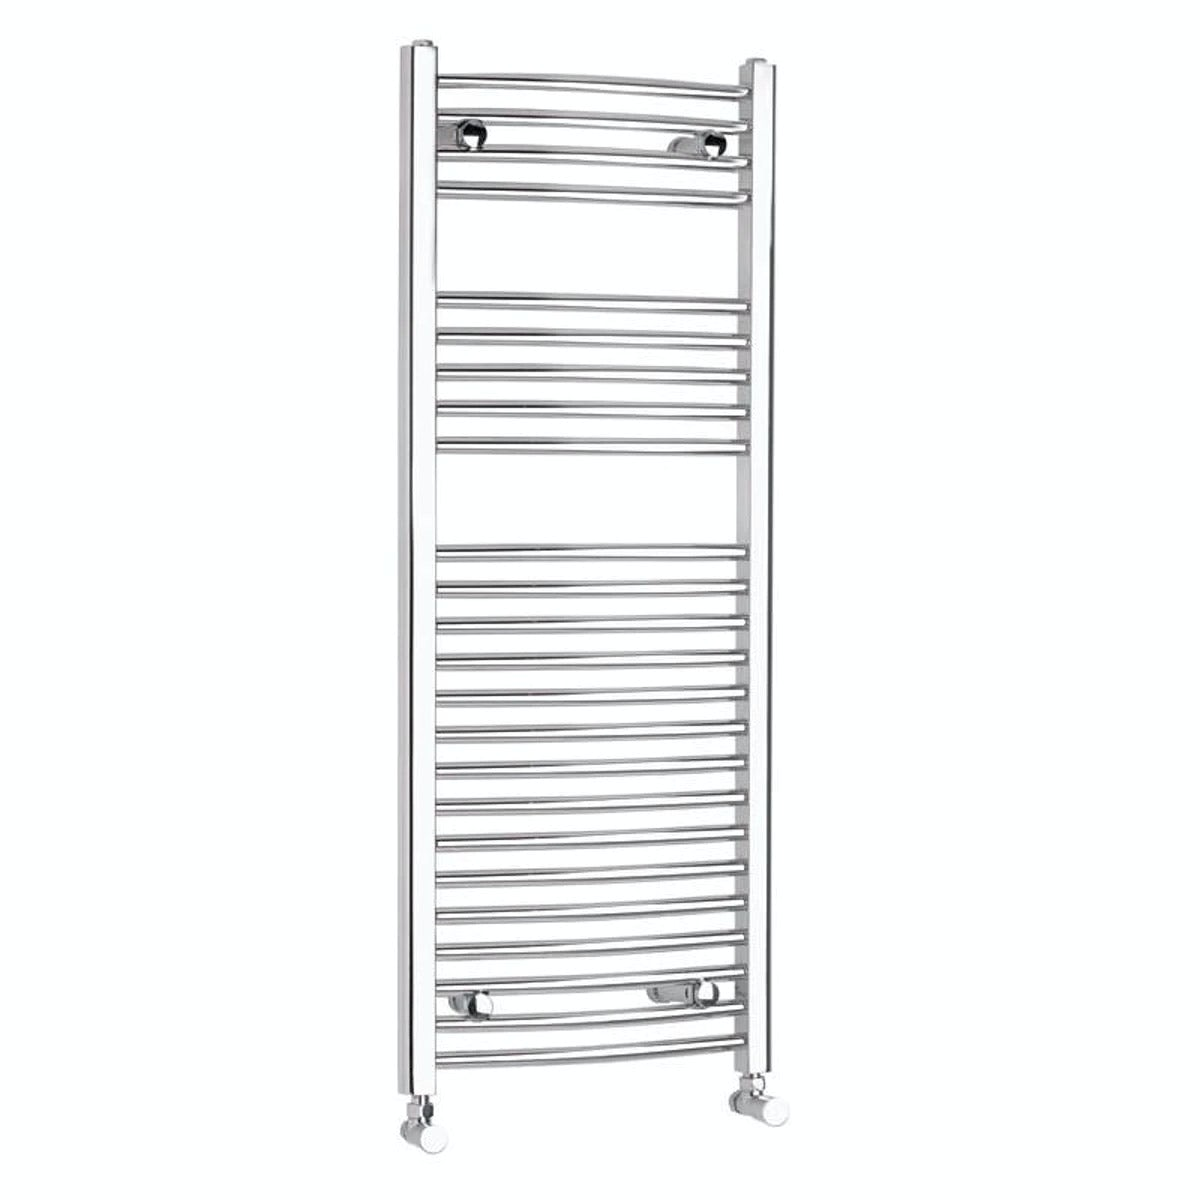 Orchard Elsdon heated towel rail 1150 x 450 offer pack